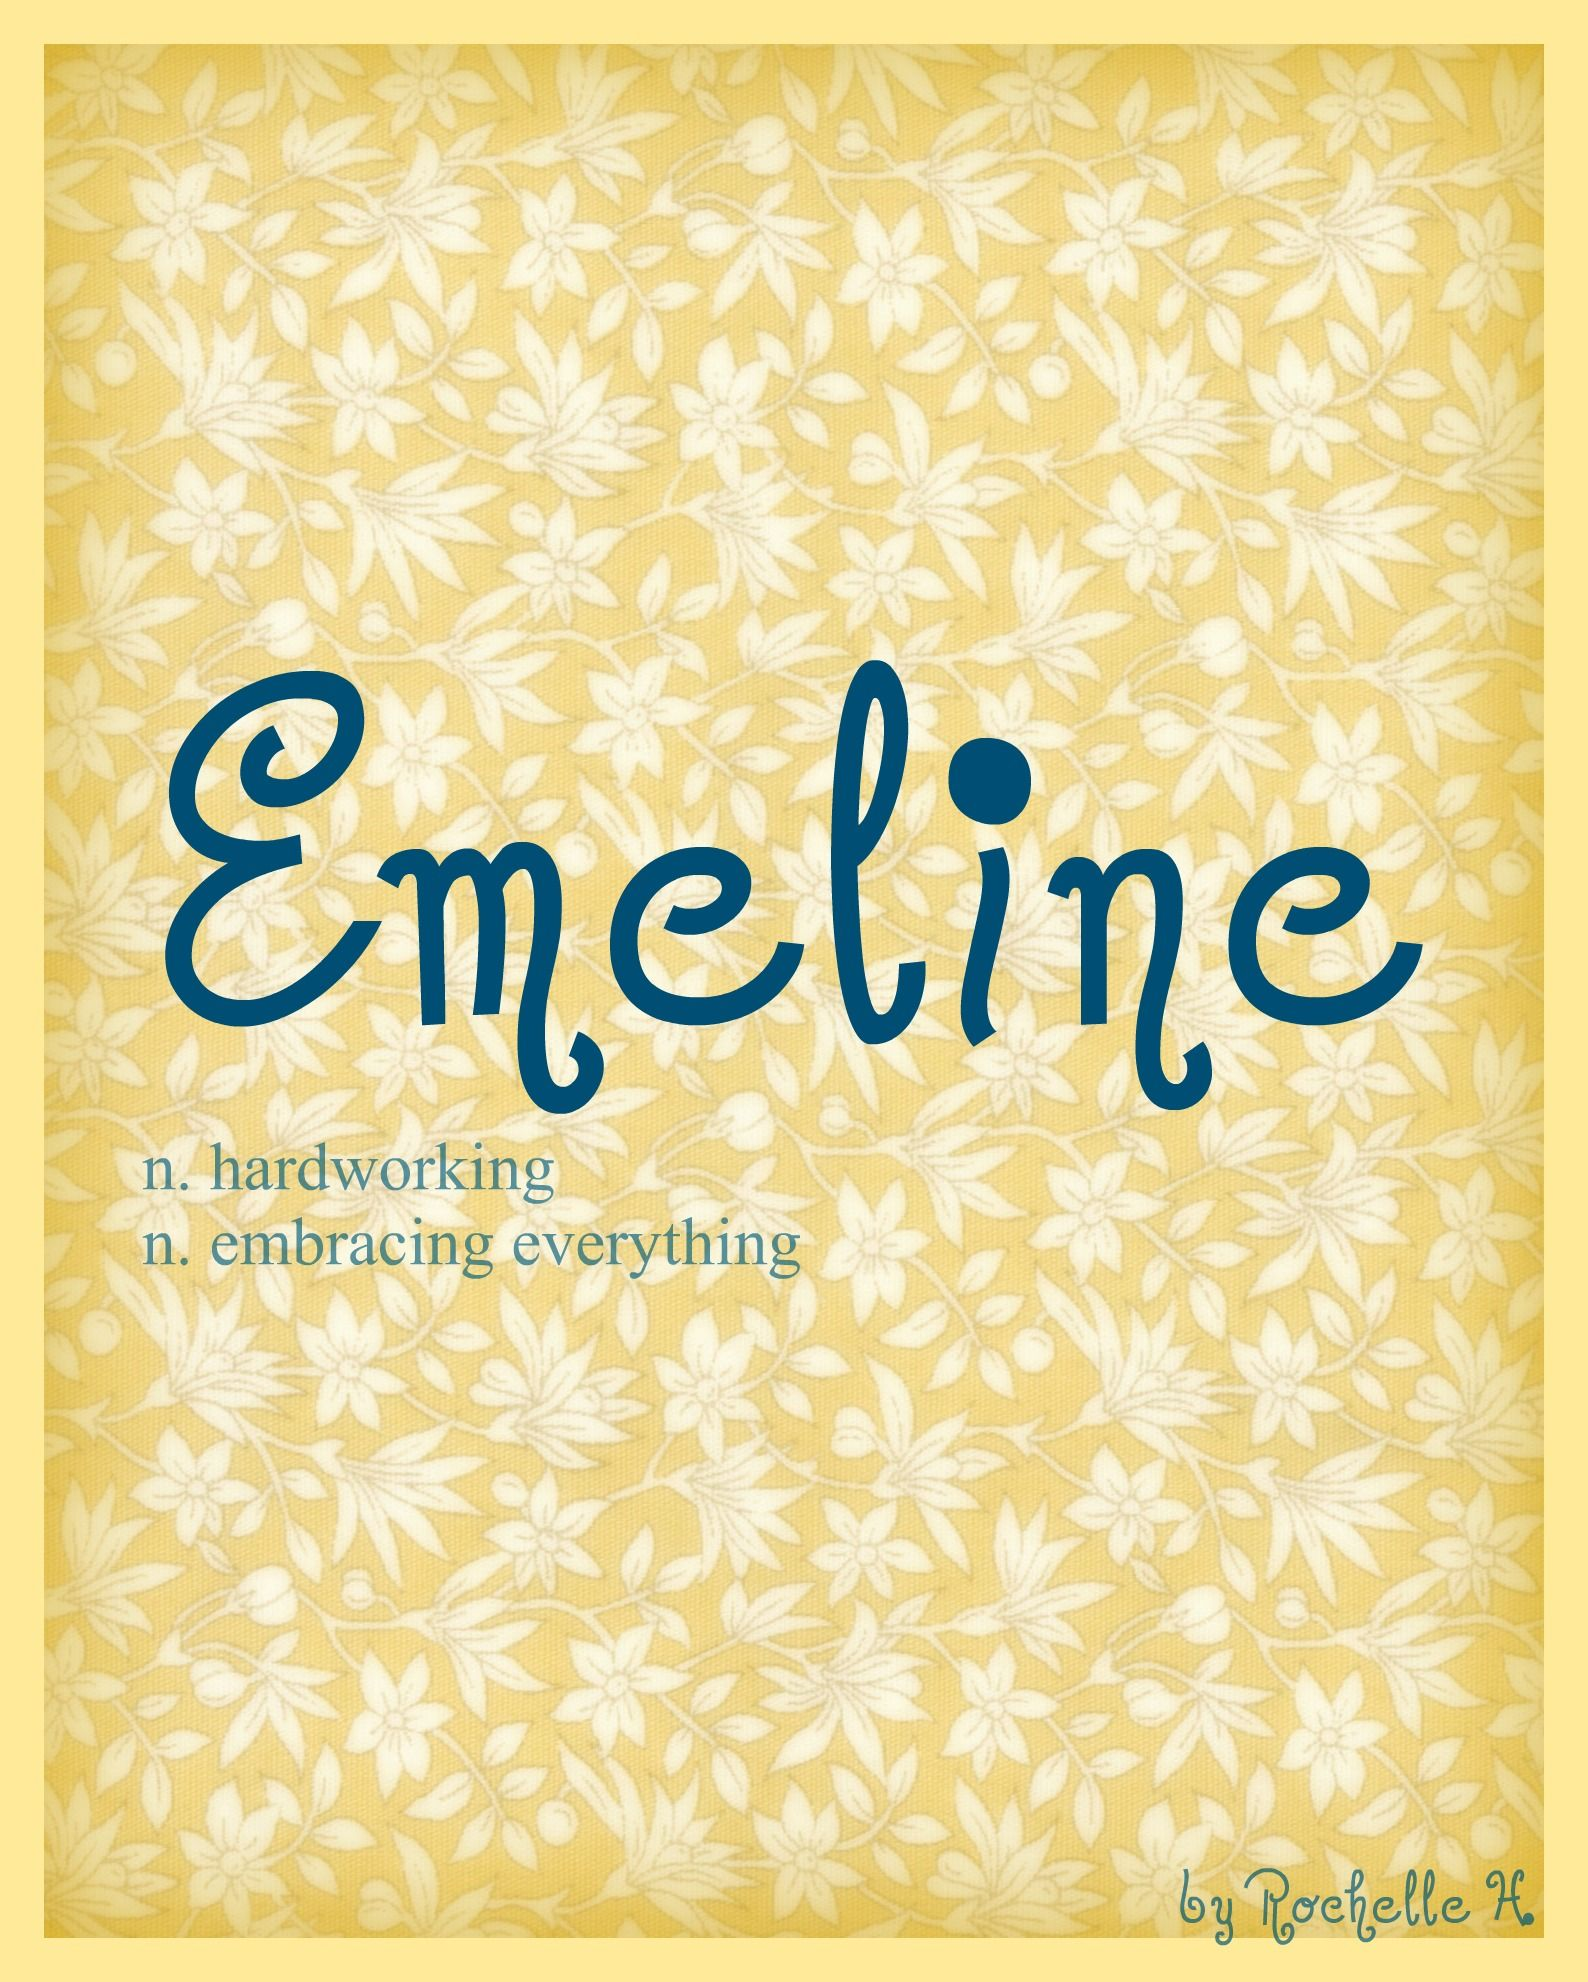 Meaning of name blanche - Girl Name Emeline Meaning Hardworking Embracing Everything Origin French